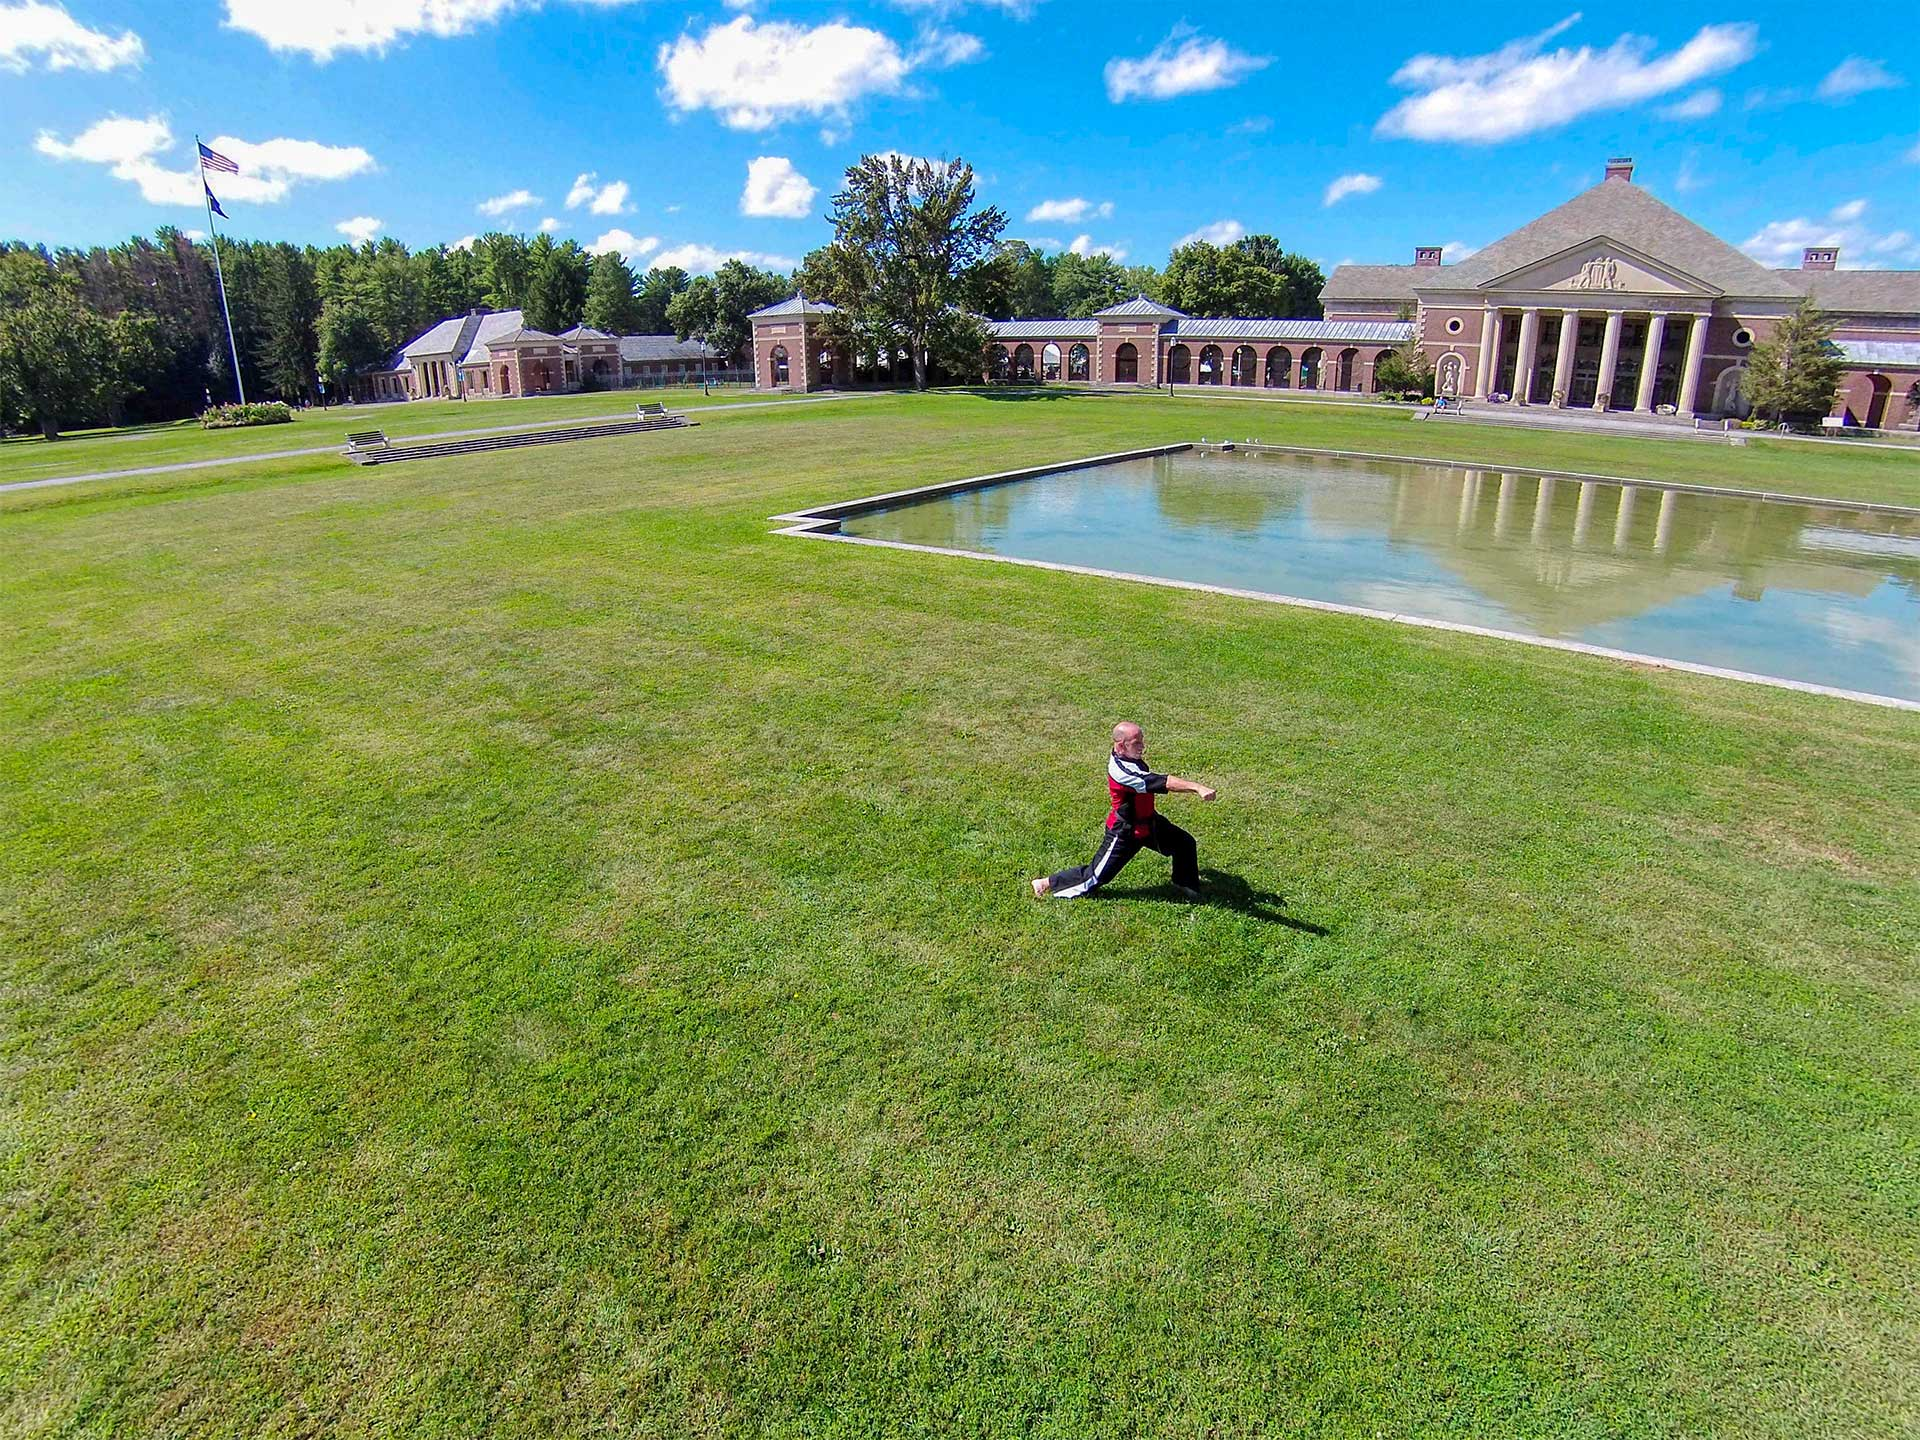 Aerial view of Sensei Jeff Melander performing a Karate Kata at the reflecting pool near the Hall of Springs in Saratoga, New York.